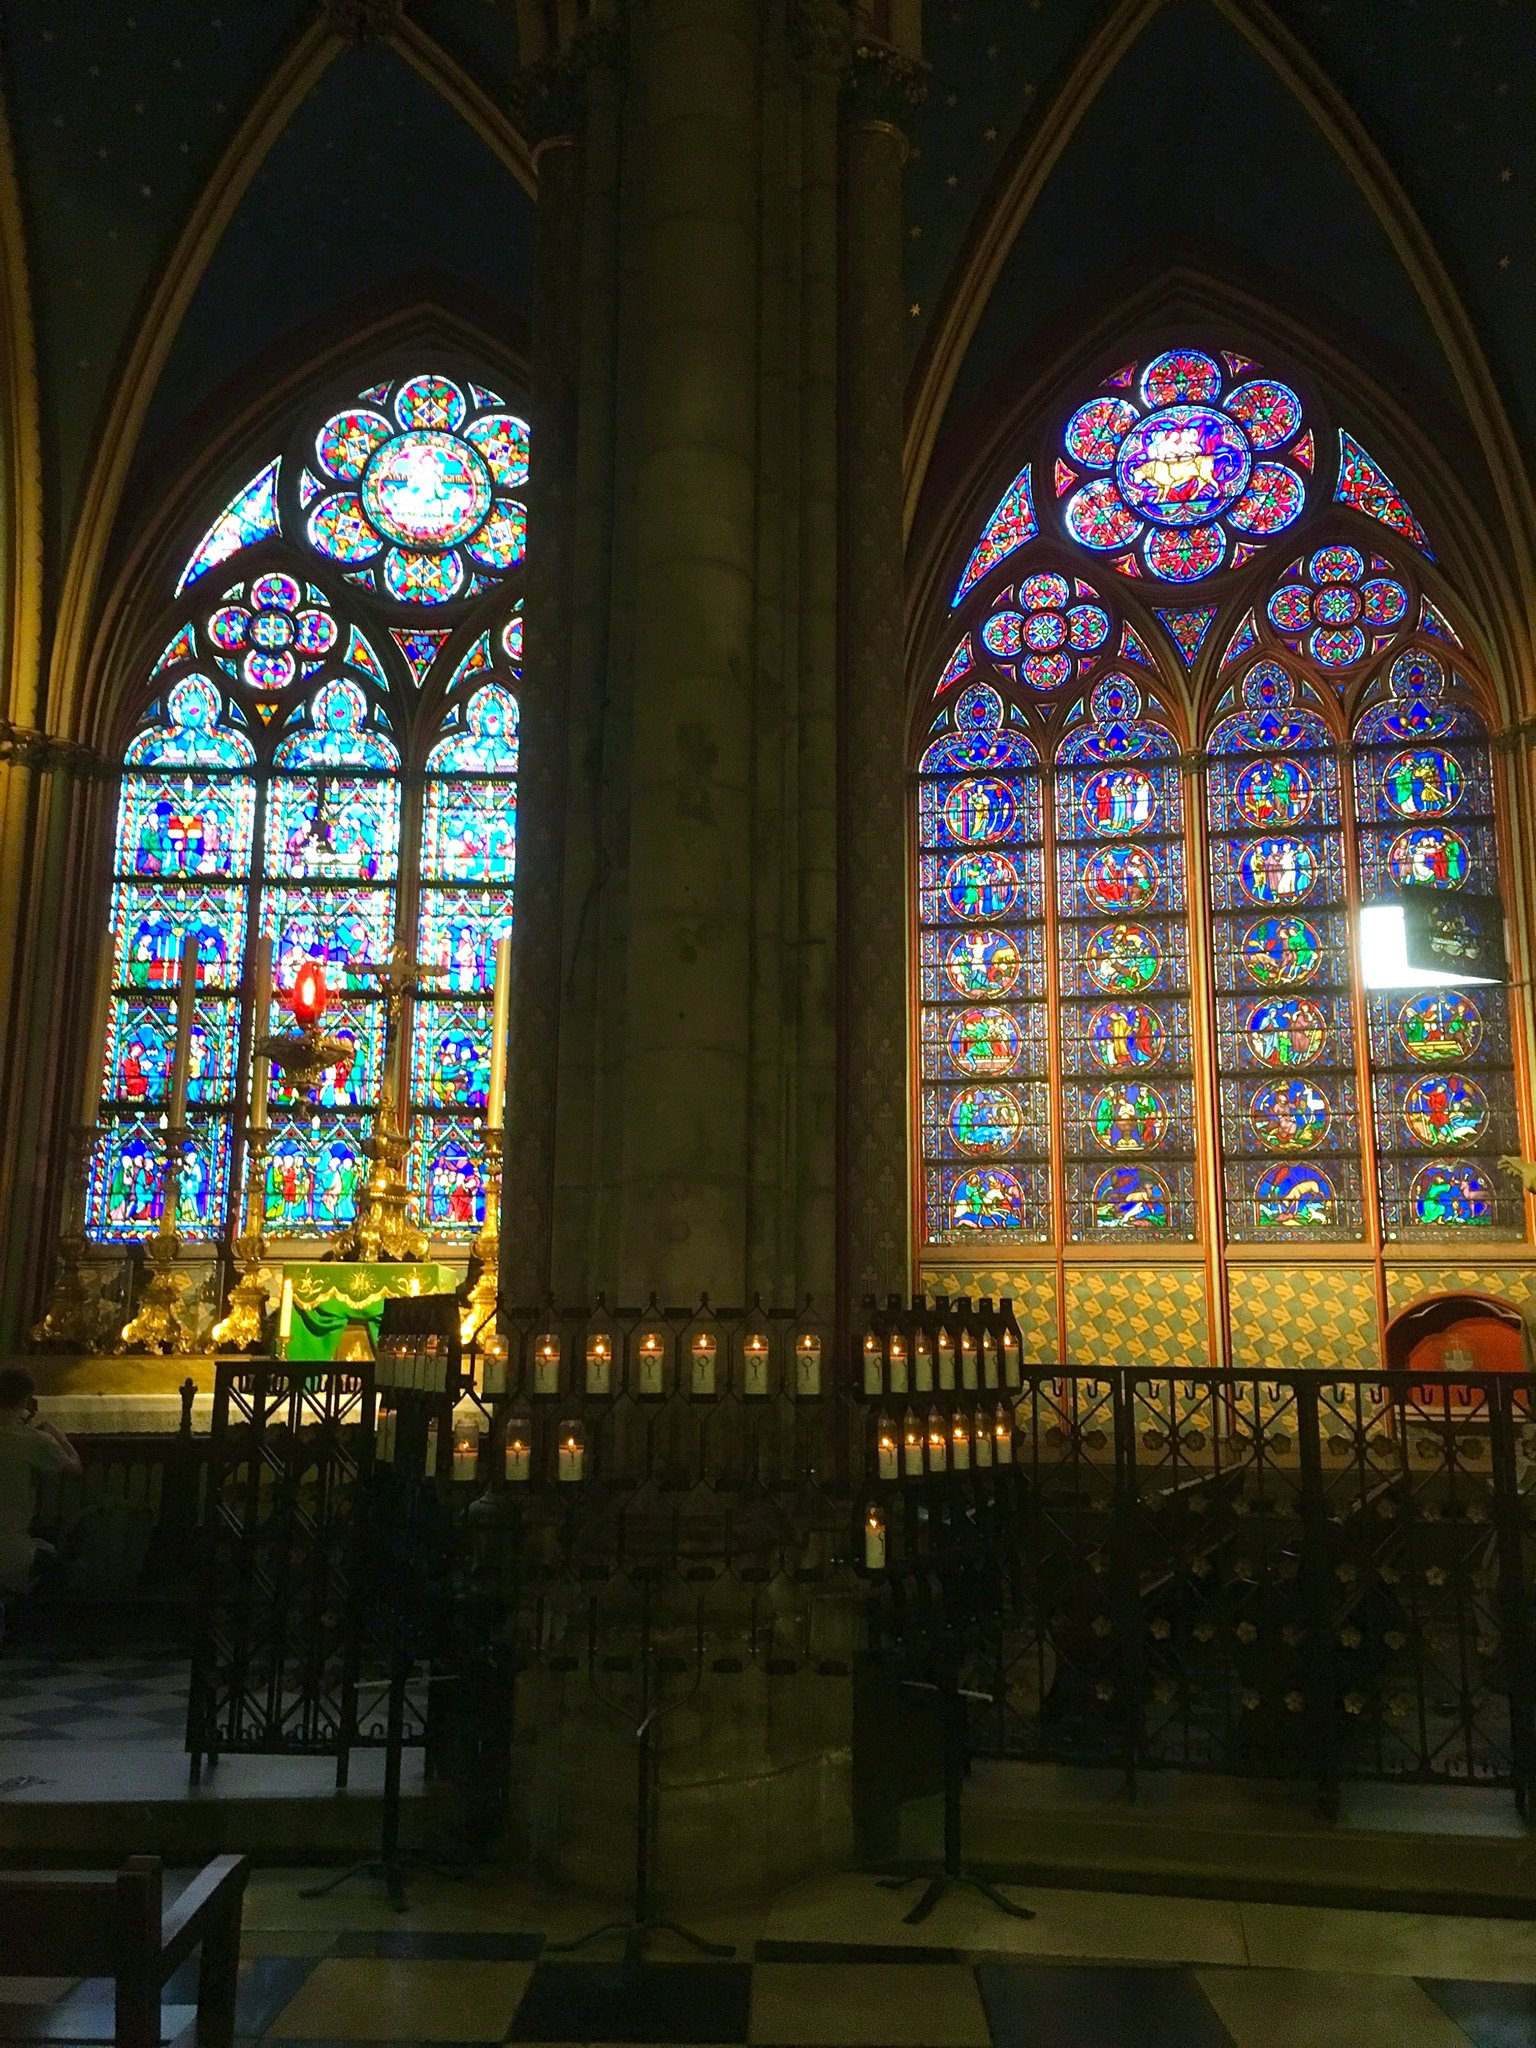 """Interior shot taken during my most recent trip to Paris in September 2018."" Locals shared their memories and photos of the historic Notre Dame on April 15, 2019 after hearing the gothic Parisian cathedral suffered serious damage after a fire.{ } (Image - Christina Arbini)"